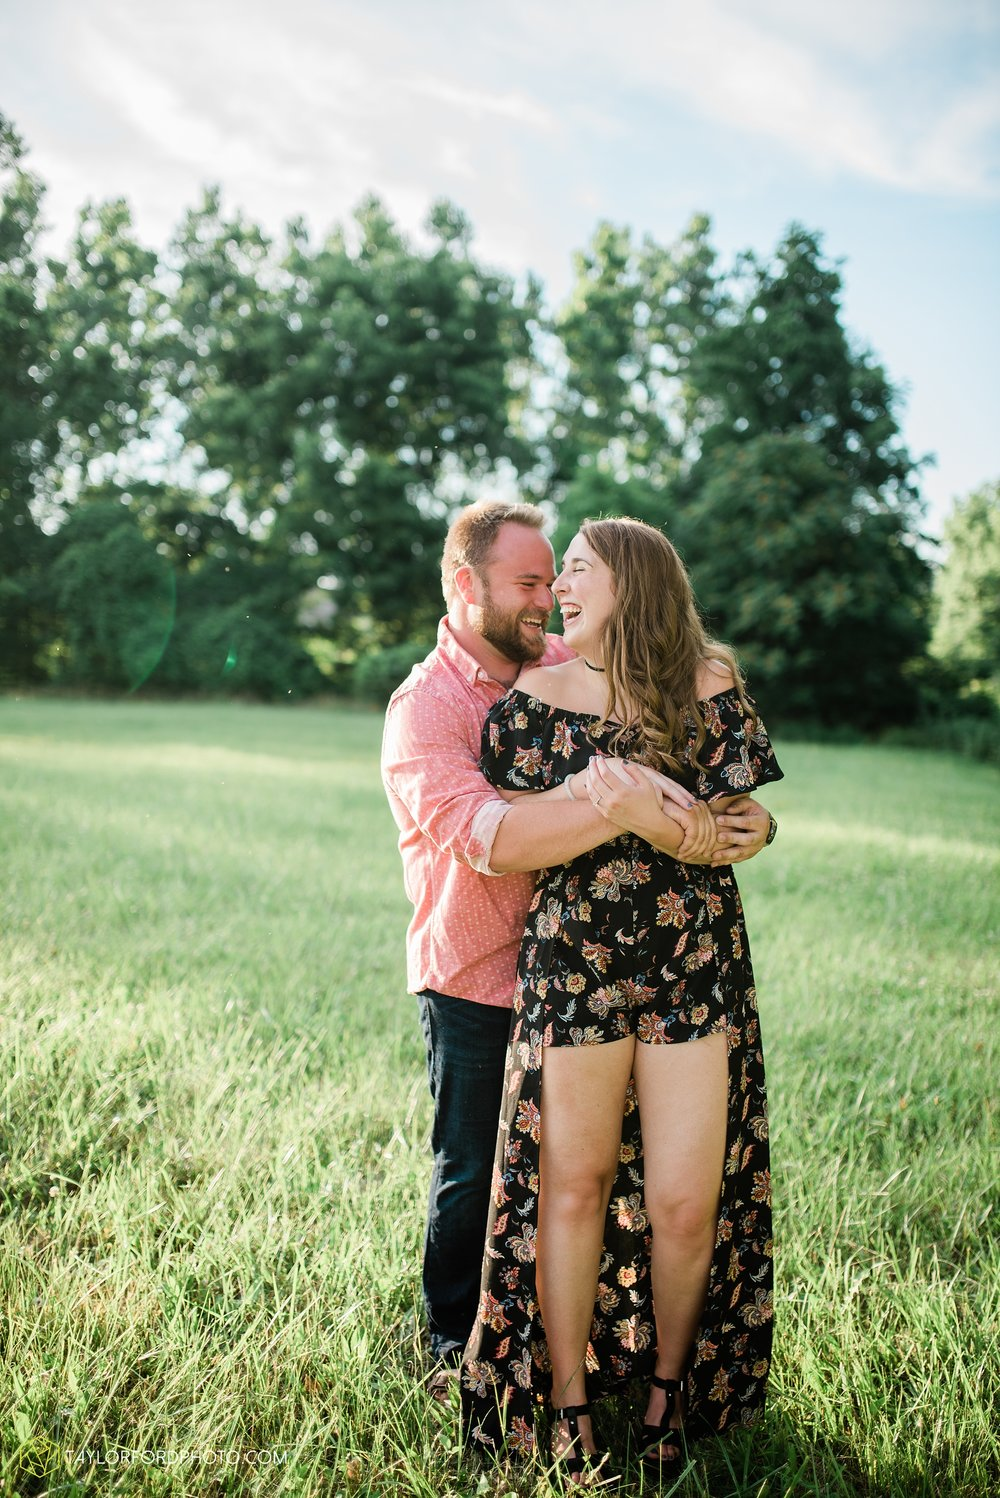 chelsey-jackson-young-downtown-fort-wayne-indiana-the-halls-deck-engagement-wedding-photographer-Taylor-Ford-Photography_8227.jpg